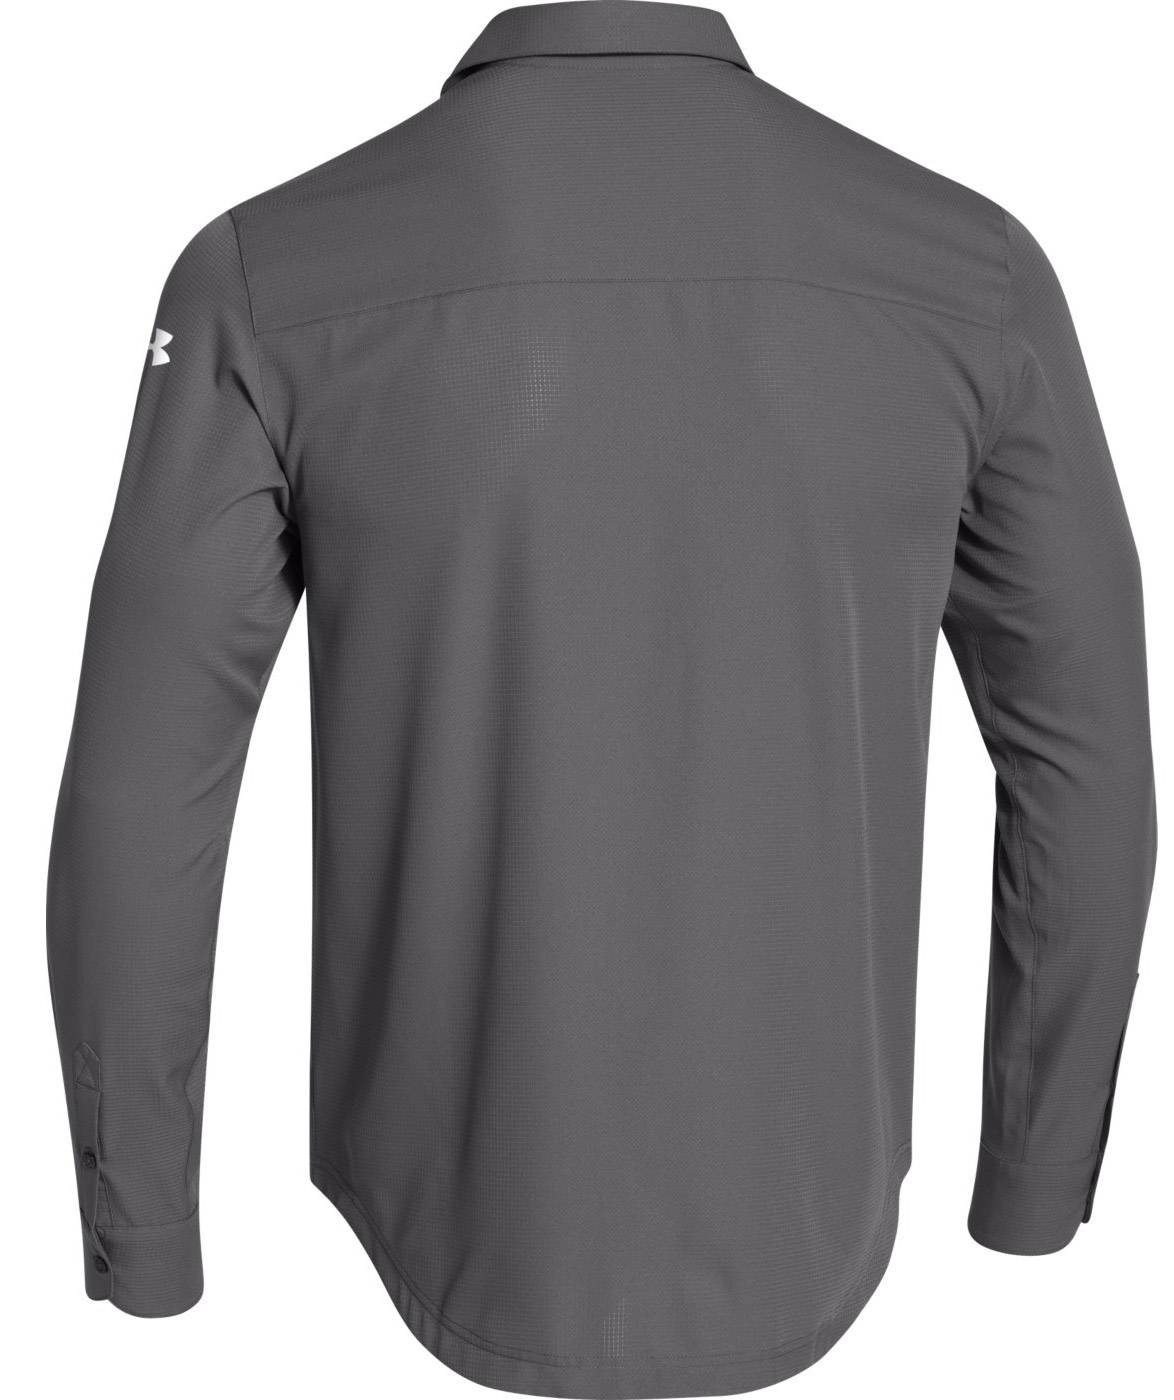 Black t shirt under button down - Prev Next The Under Armour Ultimate Men S Button Down Long Sleeve Shirt Offers Casual Comfort With